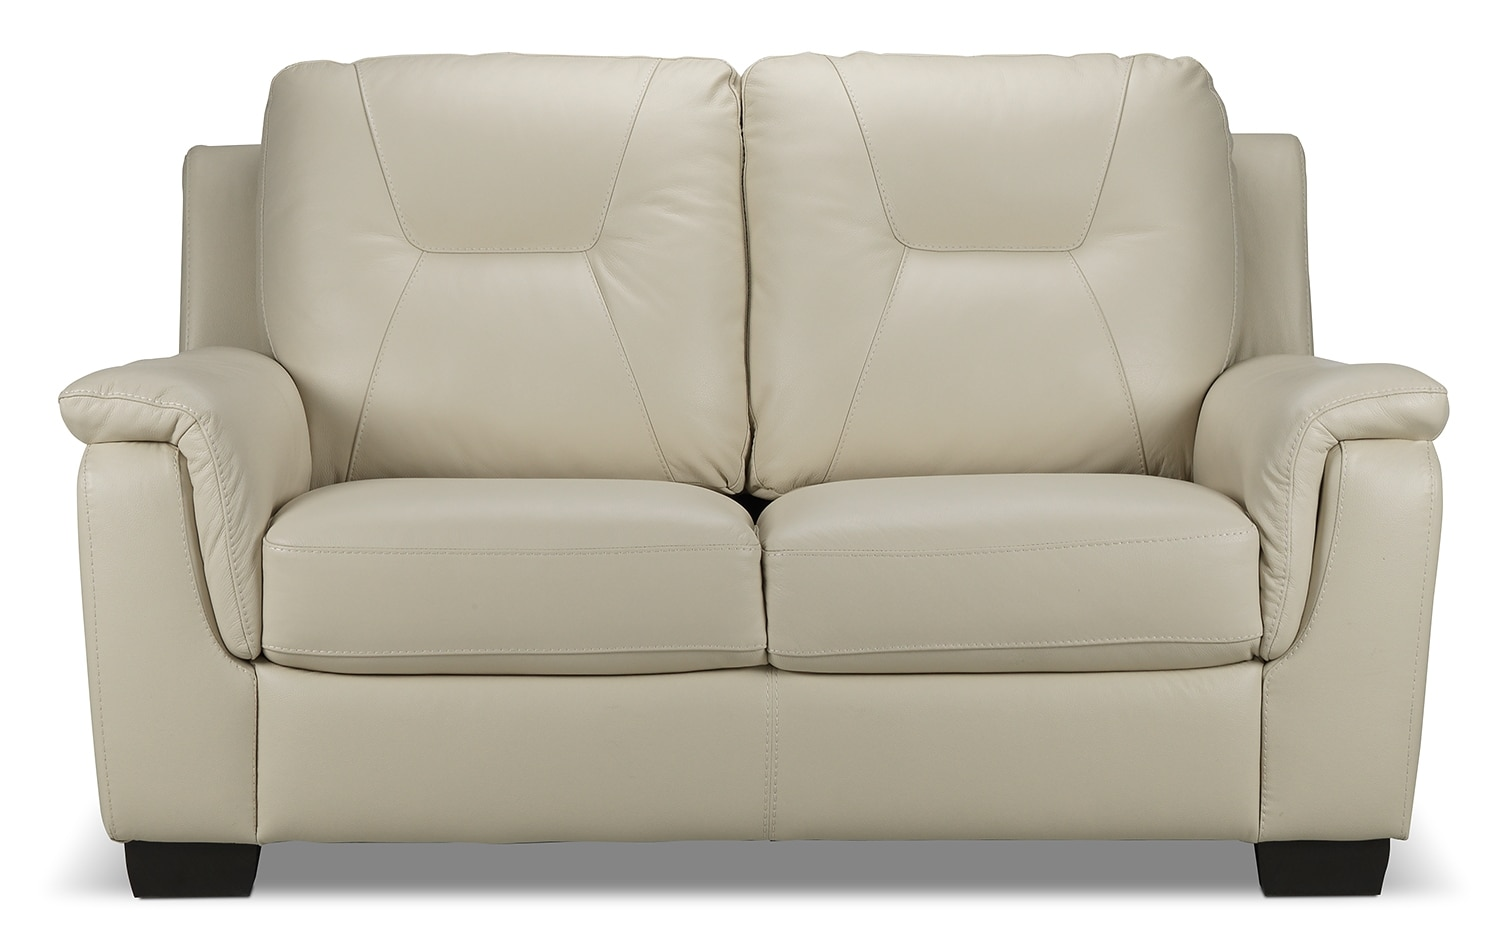 Dalia Loveseat - Bisque